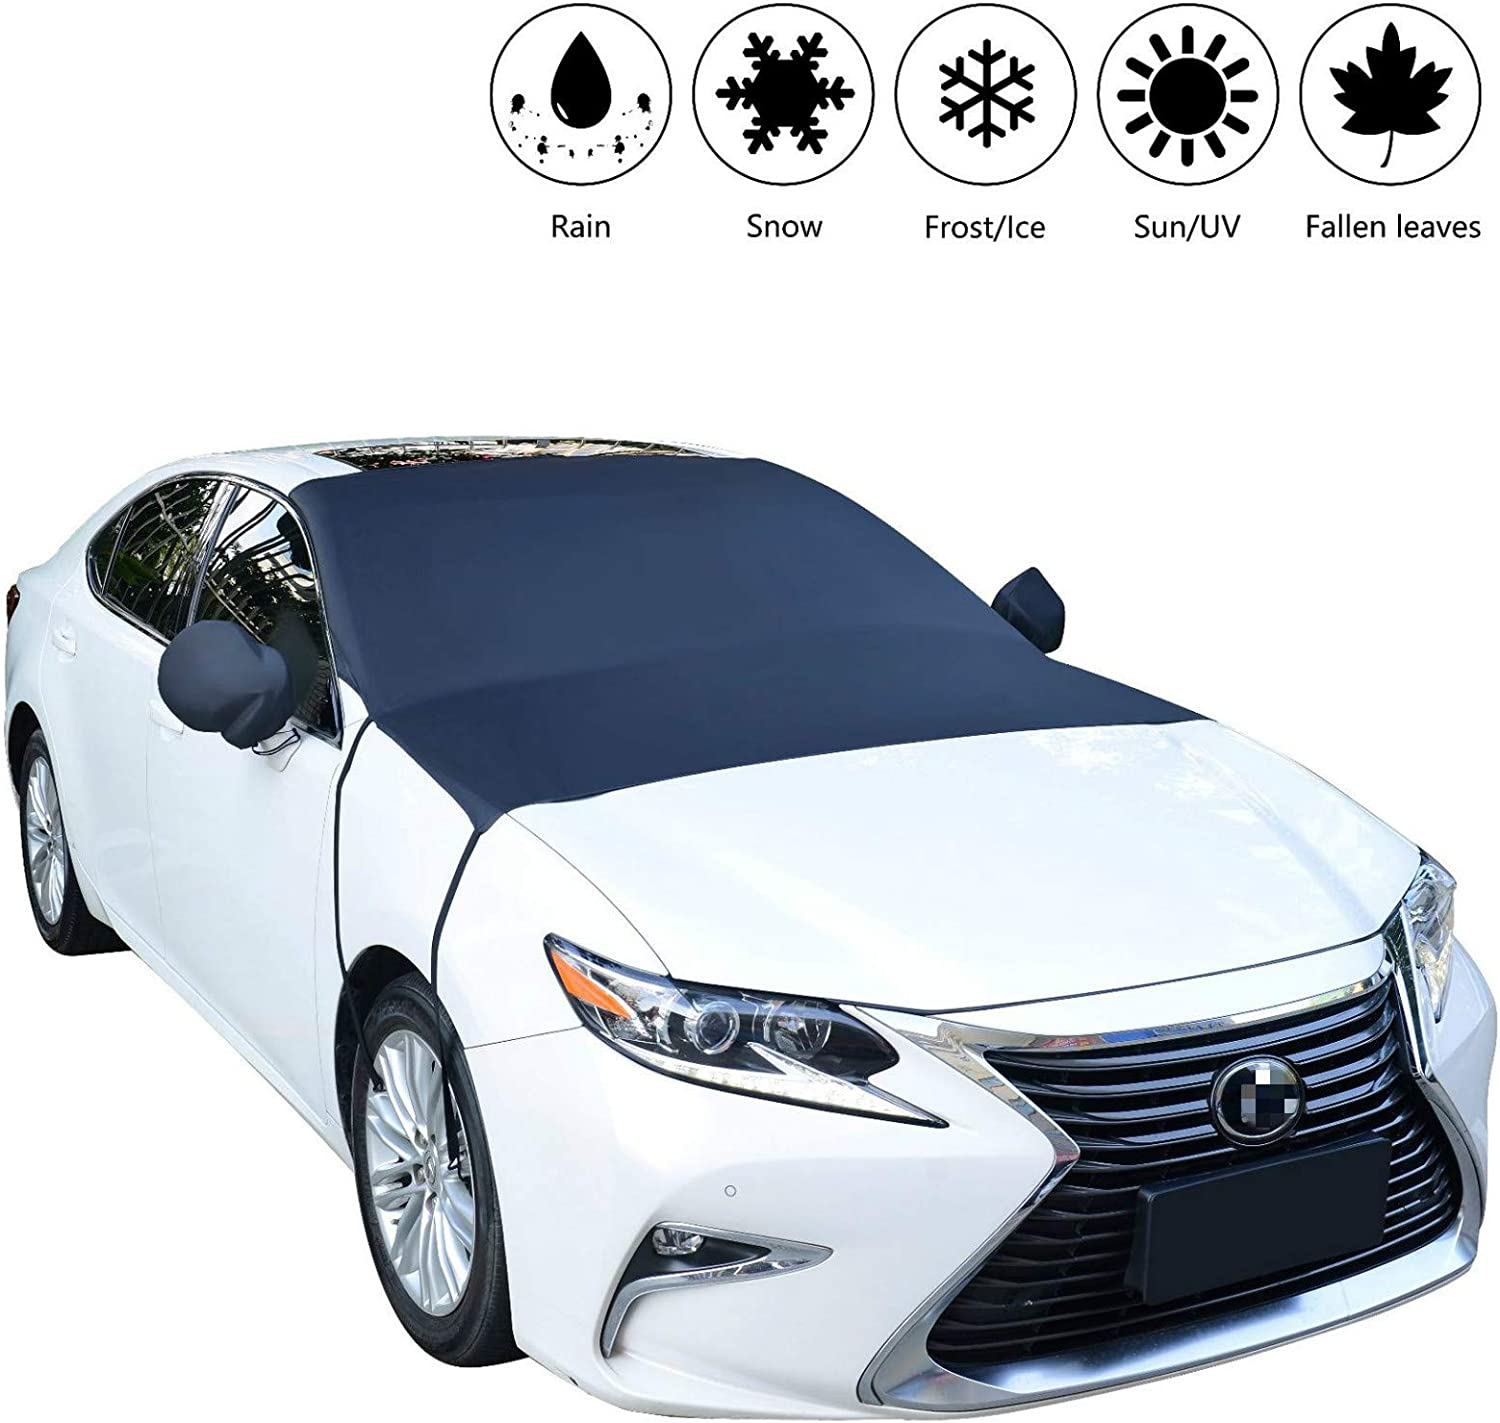 Fits Most Cars Ice and Frost Mid-Size SUVs and Minivans FROSTBLOCKER Winter Windshield and Mirror Covers 2 Pack | Protects from Snow